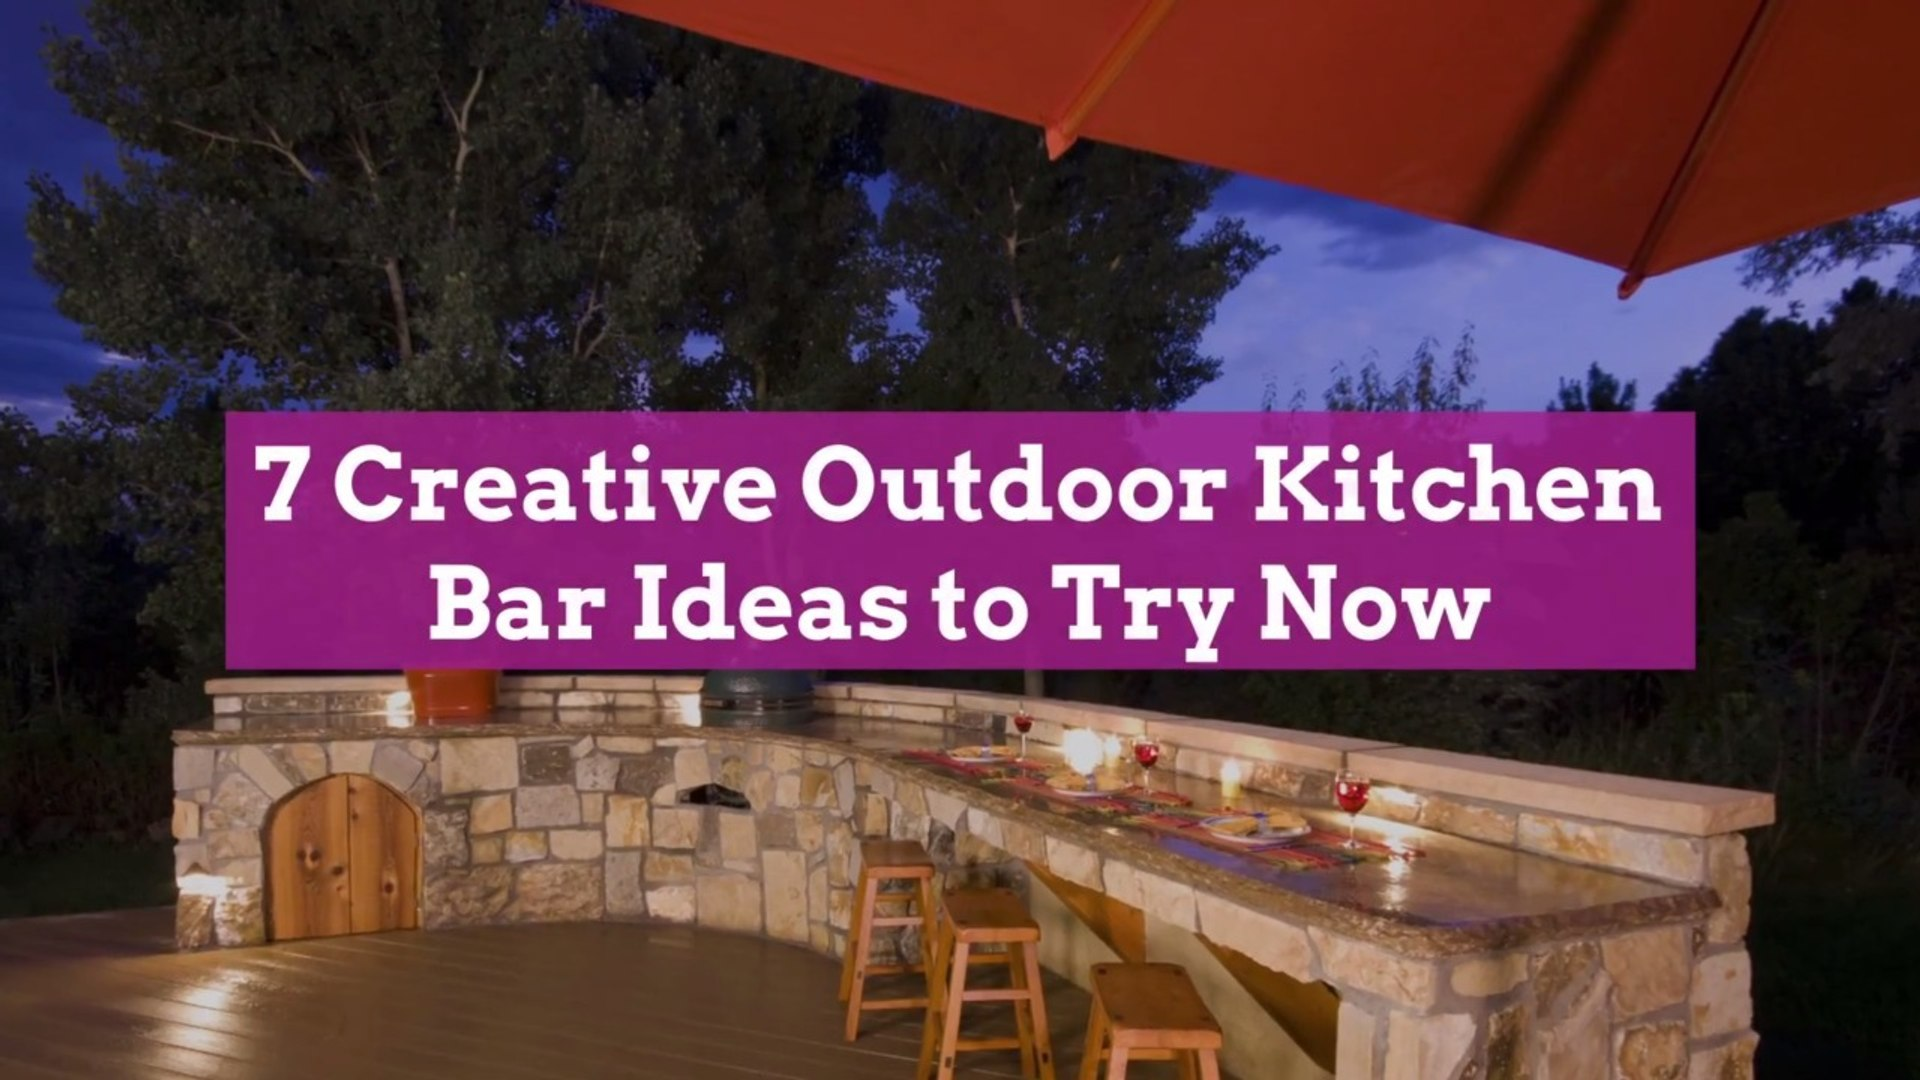 9 Creative Outdoor Kitchen Bar Ideas to Try Now